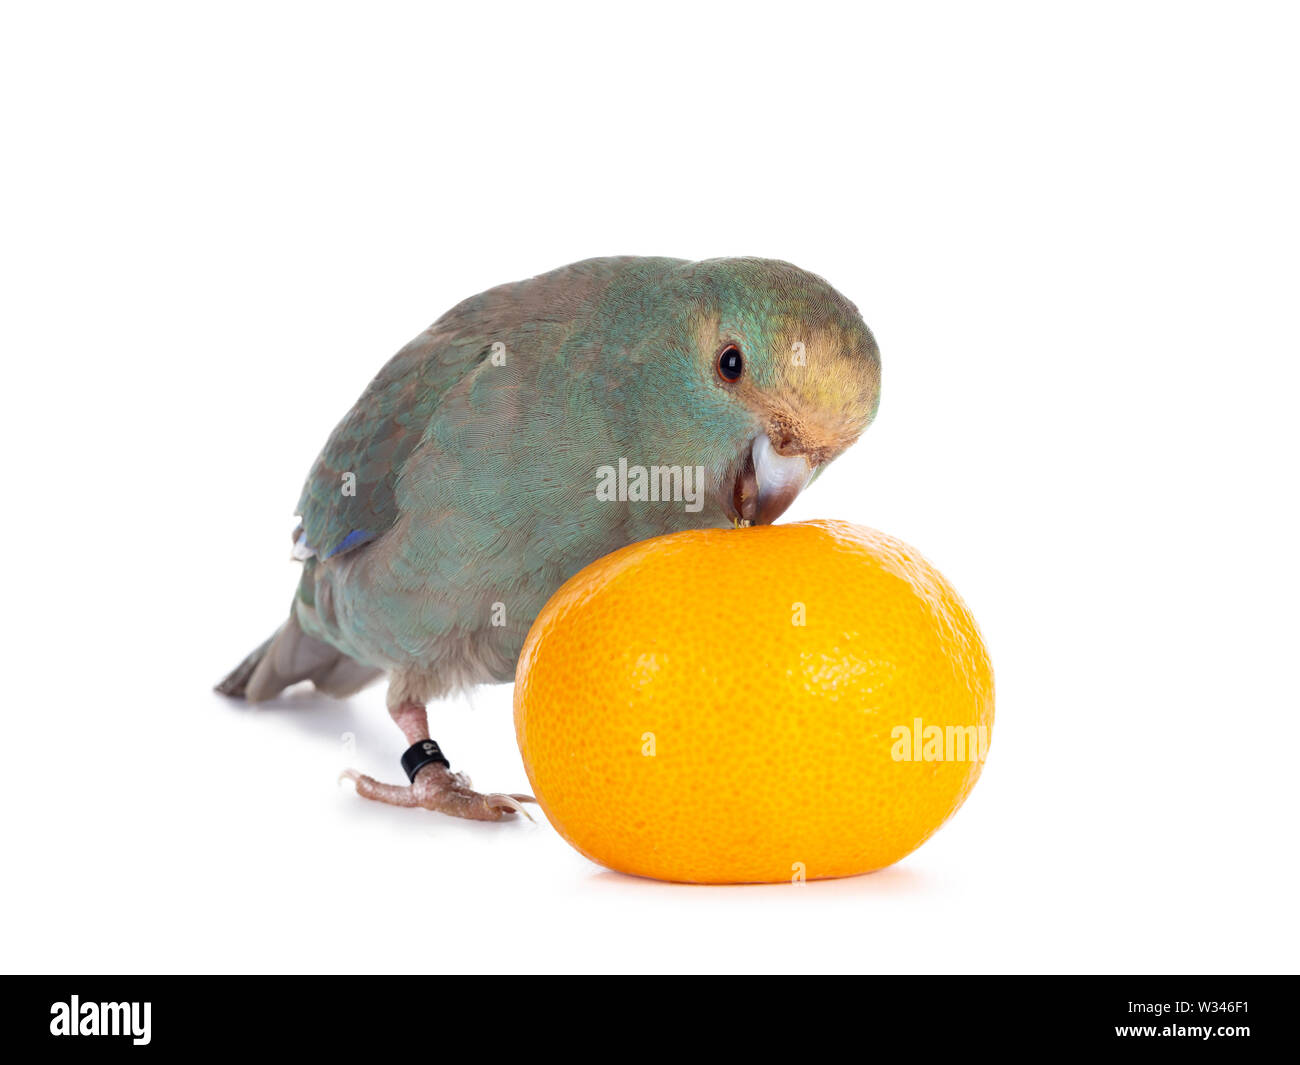 Curious turquoise Kakariki bird standing side ways playing with a mandarin, looking at camera. Isolated on white background. - Stock Image